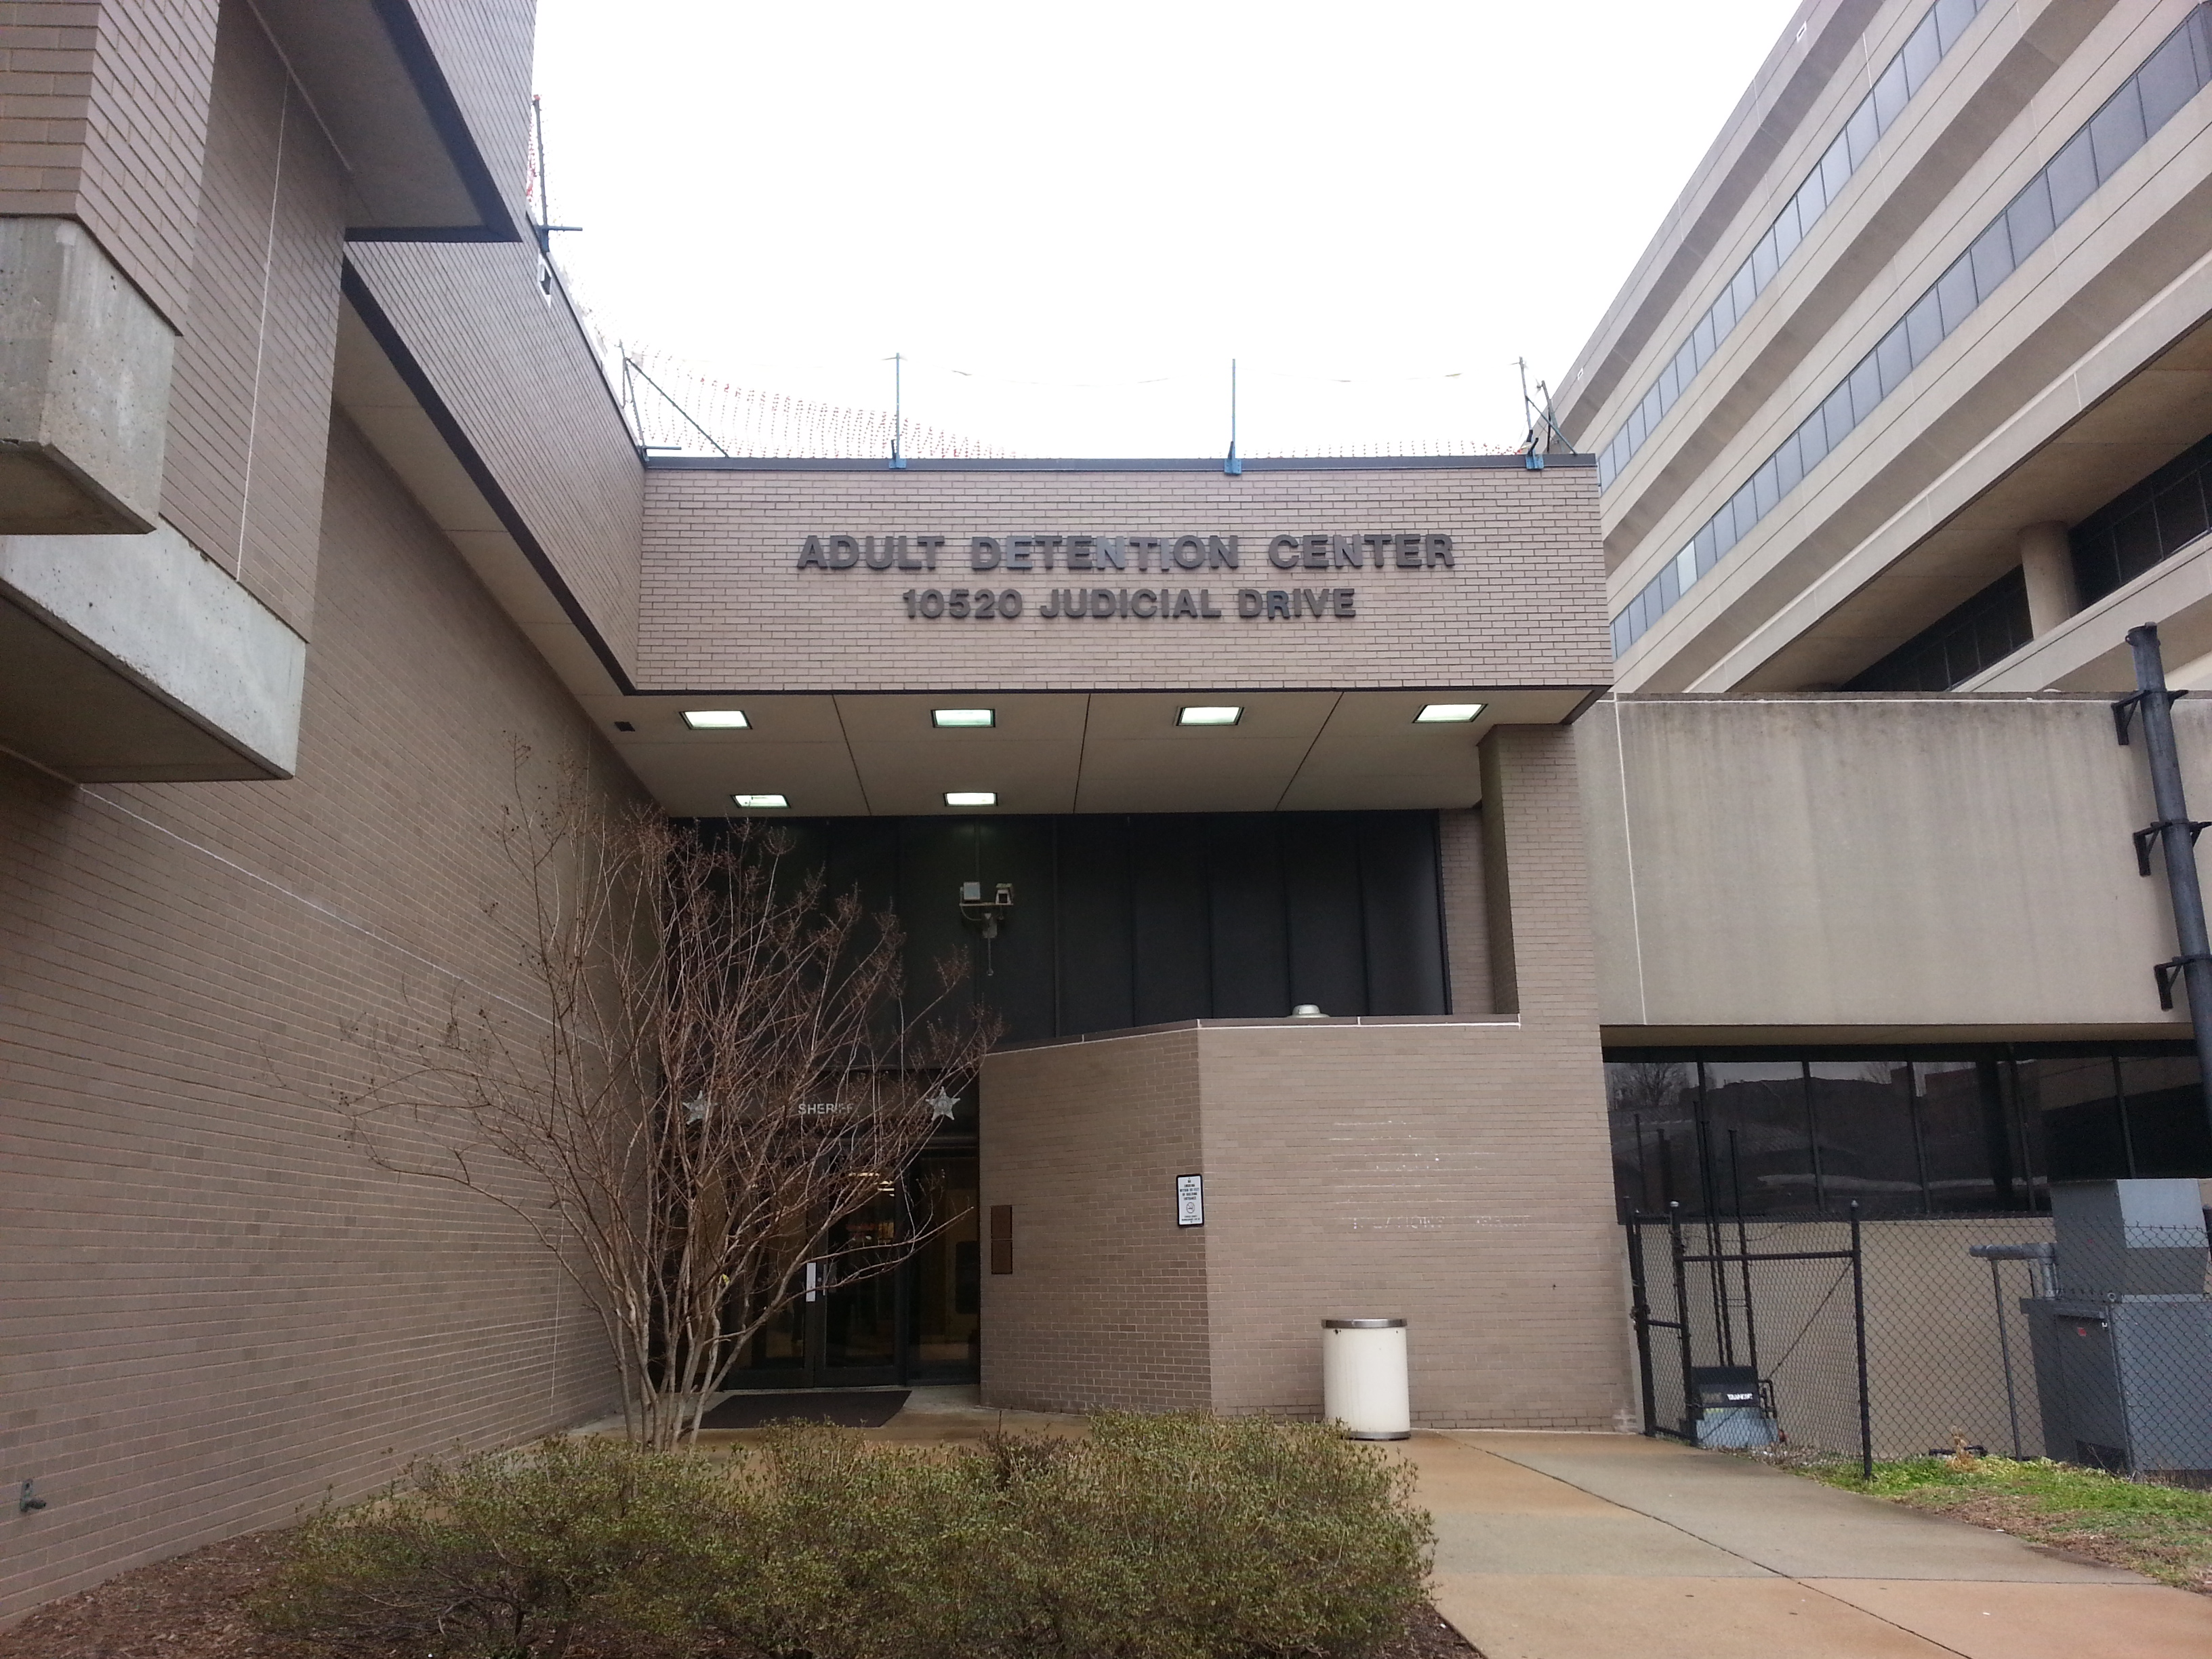 Fairfax County VA Adult Detention Center